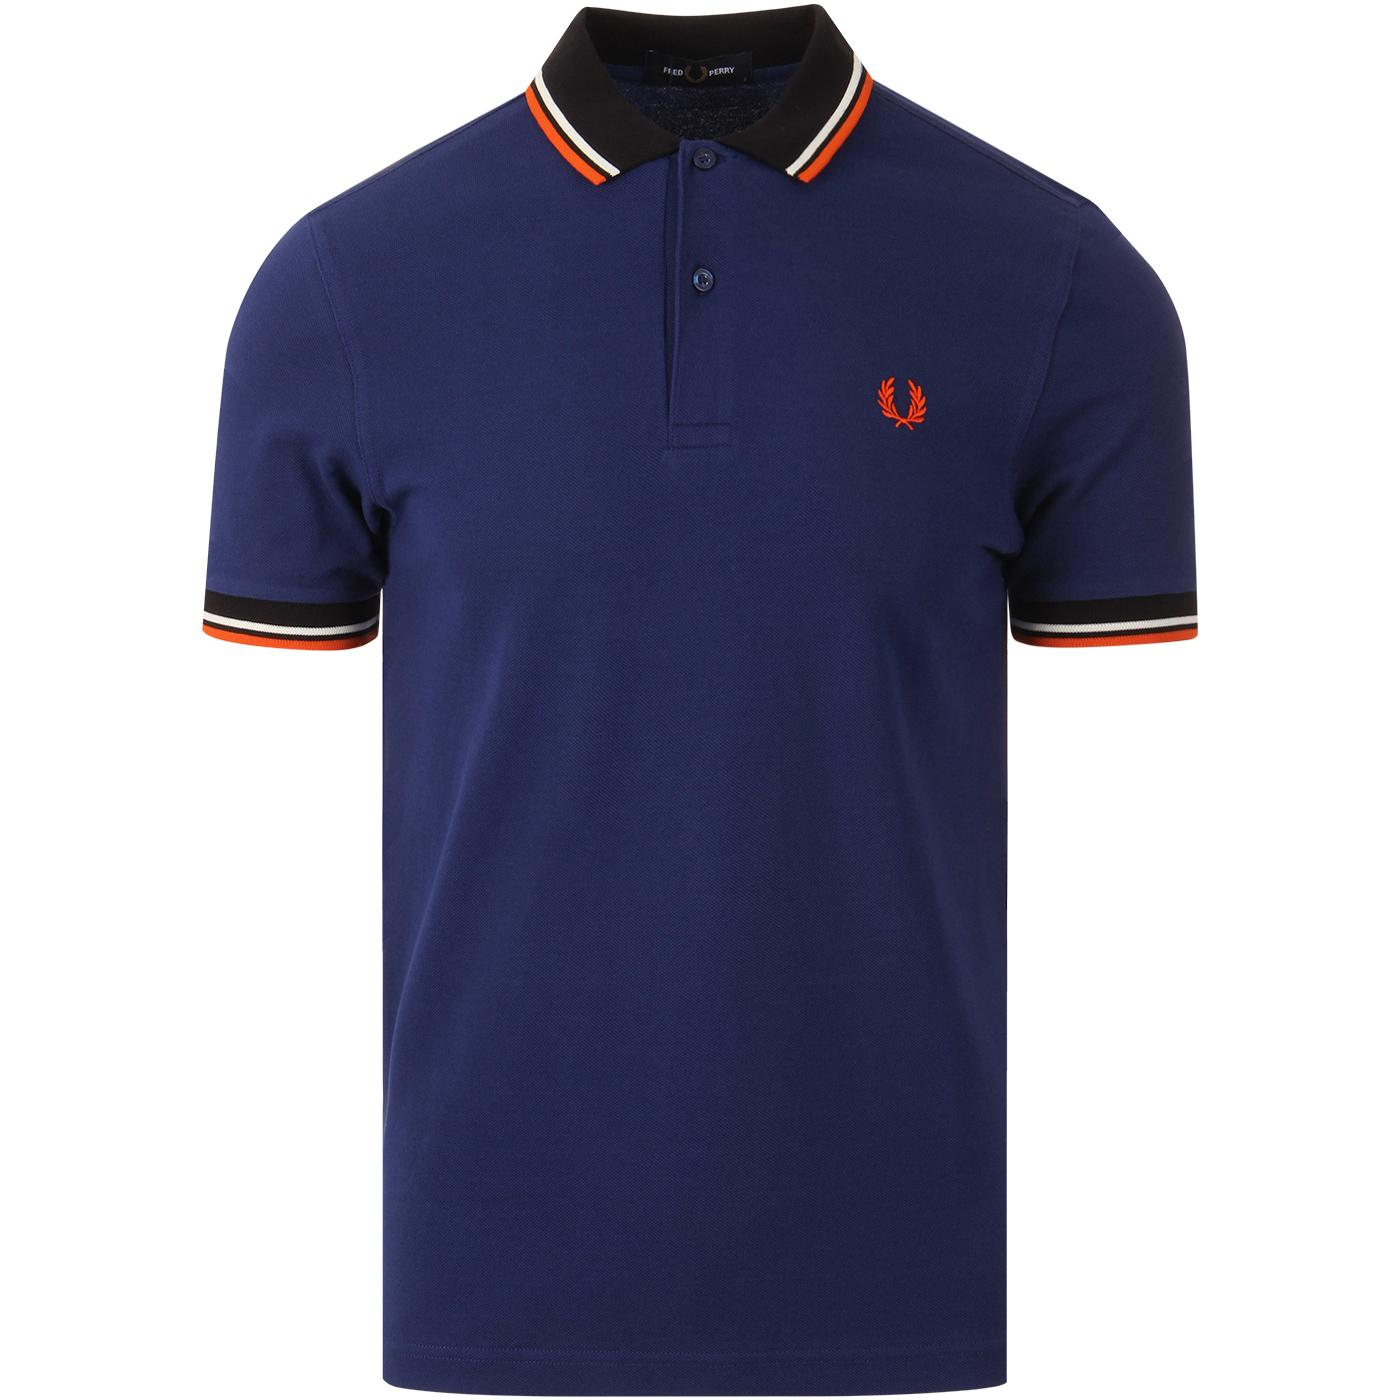 FRED PERRY Mod Twin Tipped Contrast Trim Polo (MB)